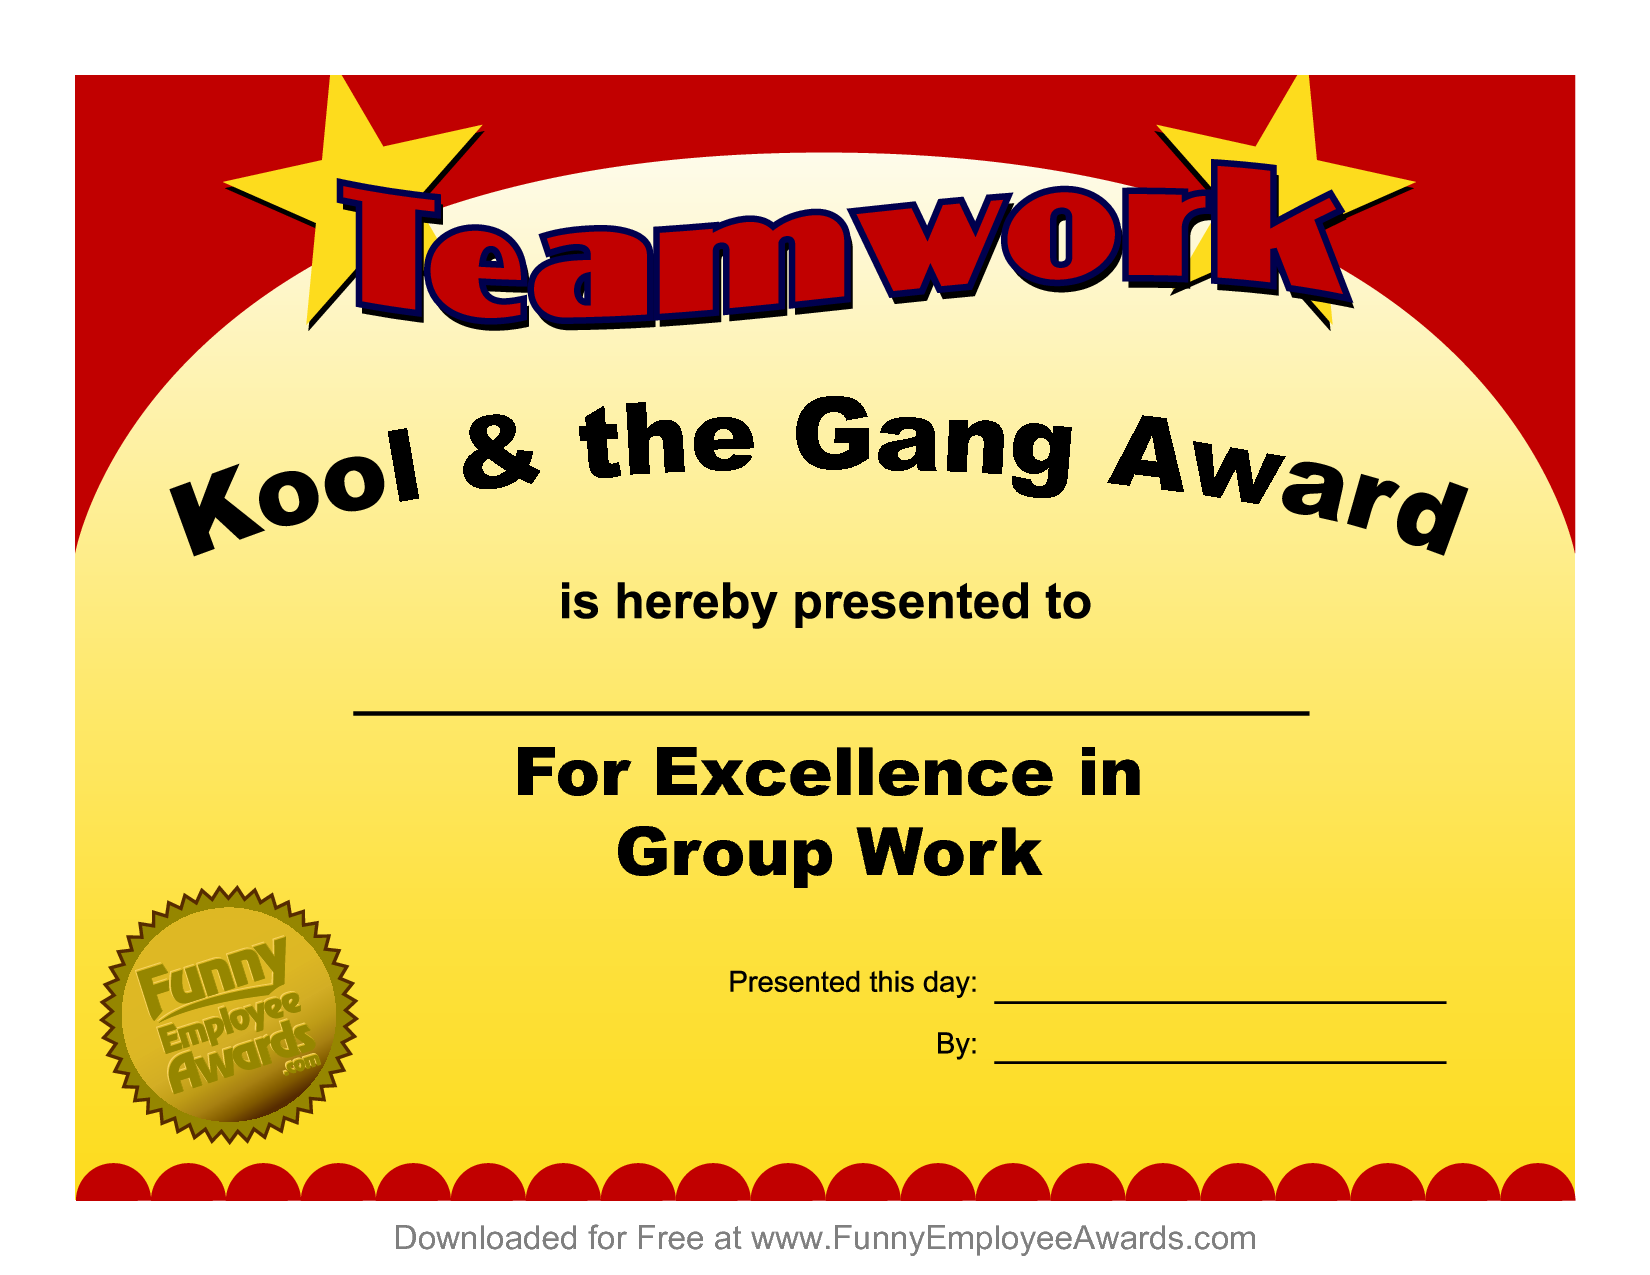 Funny employee awards google search pinteres funny teacher awards and certificates for end of the year school awards ceremonies this list of funny certificates is humorous fun and provides great yelopaper